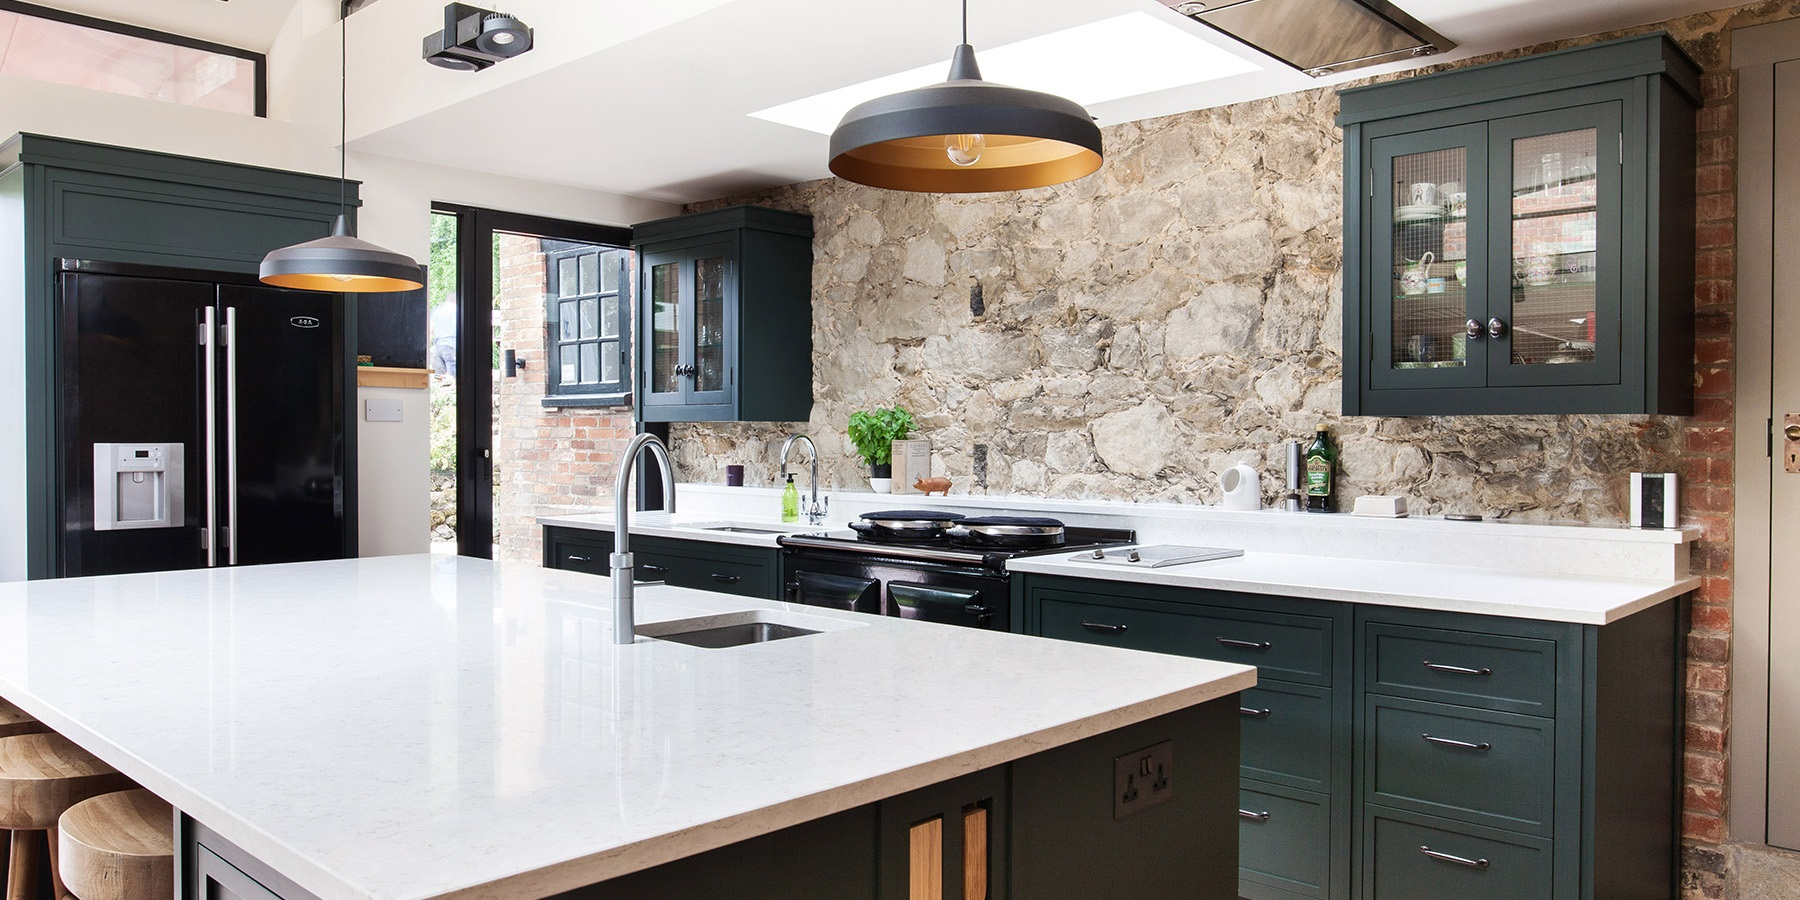 Bespoke Oast House Shaker Kitchen - Burlanes handmade Decolane kitchen island with white worktops, prep sink and Quooker boiling water tap.